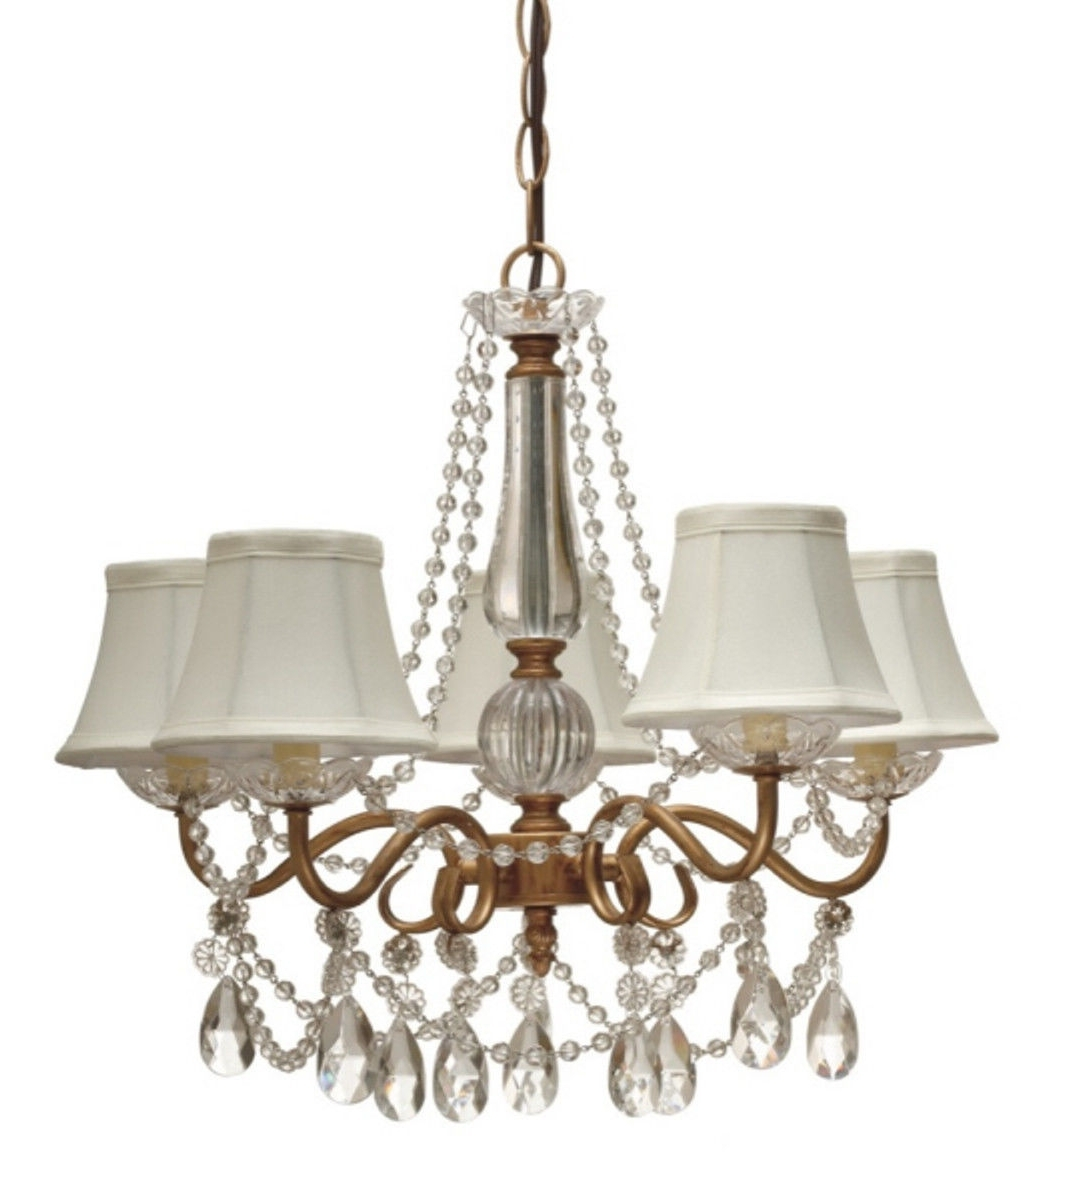 Current Enjoyable Inspiration Lamp Shades With Crystals Modern Ceiling Club For Chandelier Lampshades (View 11 of 20)